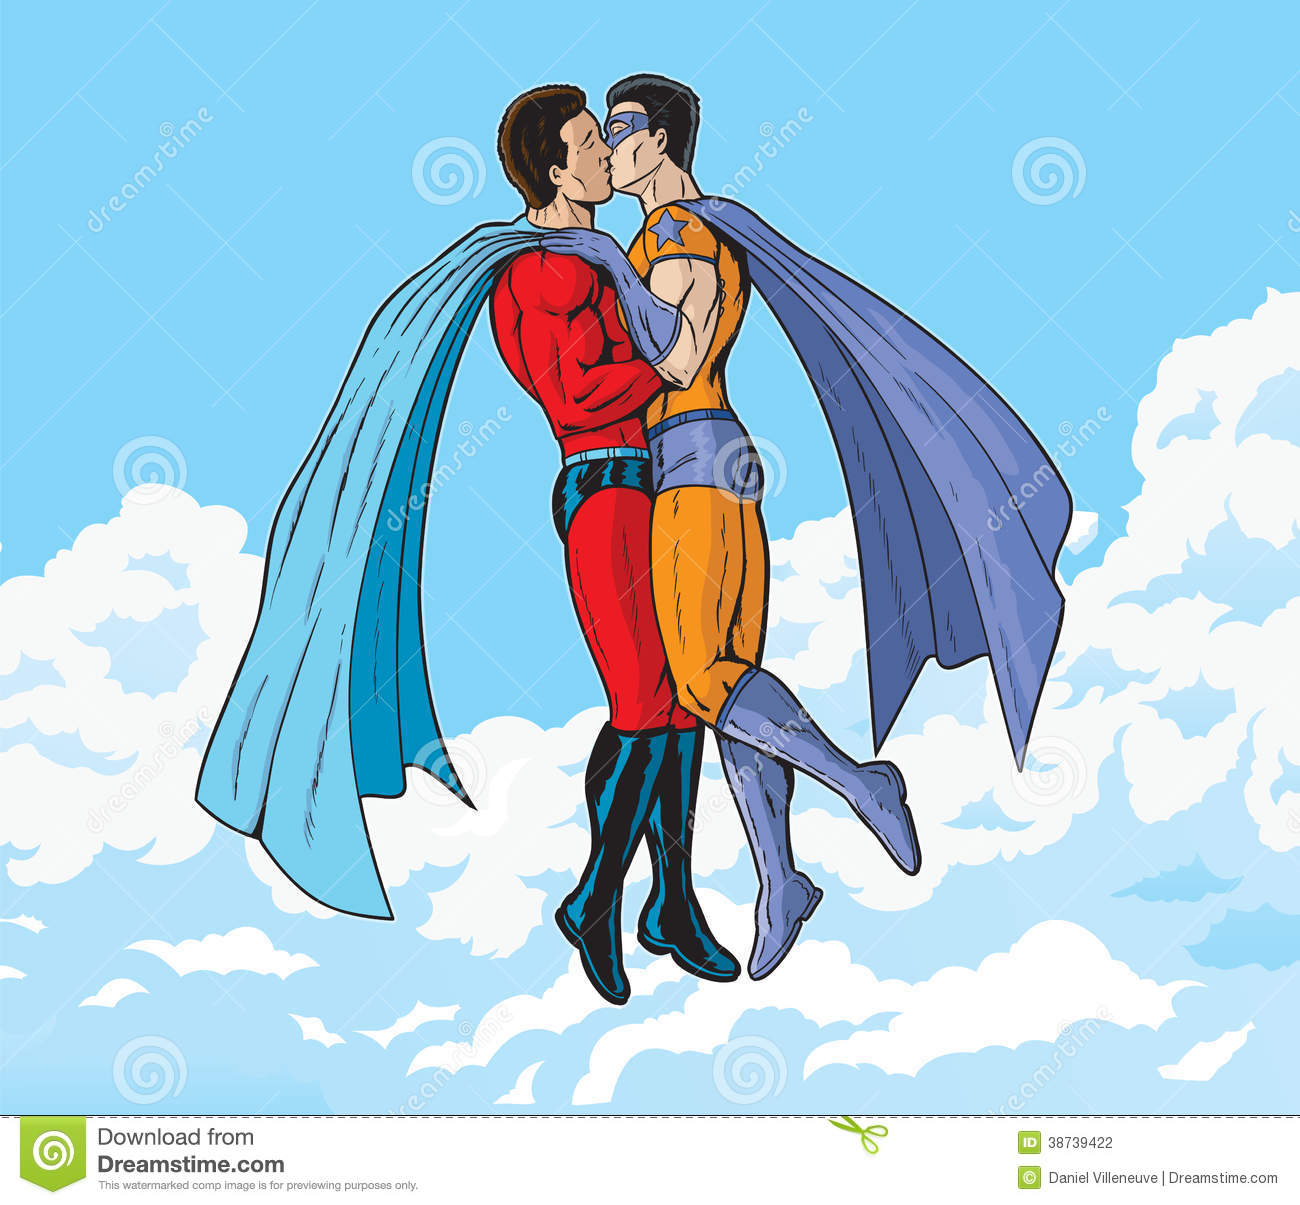 Cartoon Characters Kissing : Super duper kiss stock illustration image of hovering